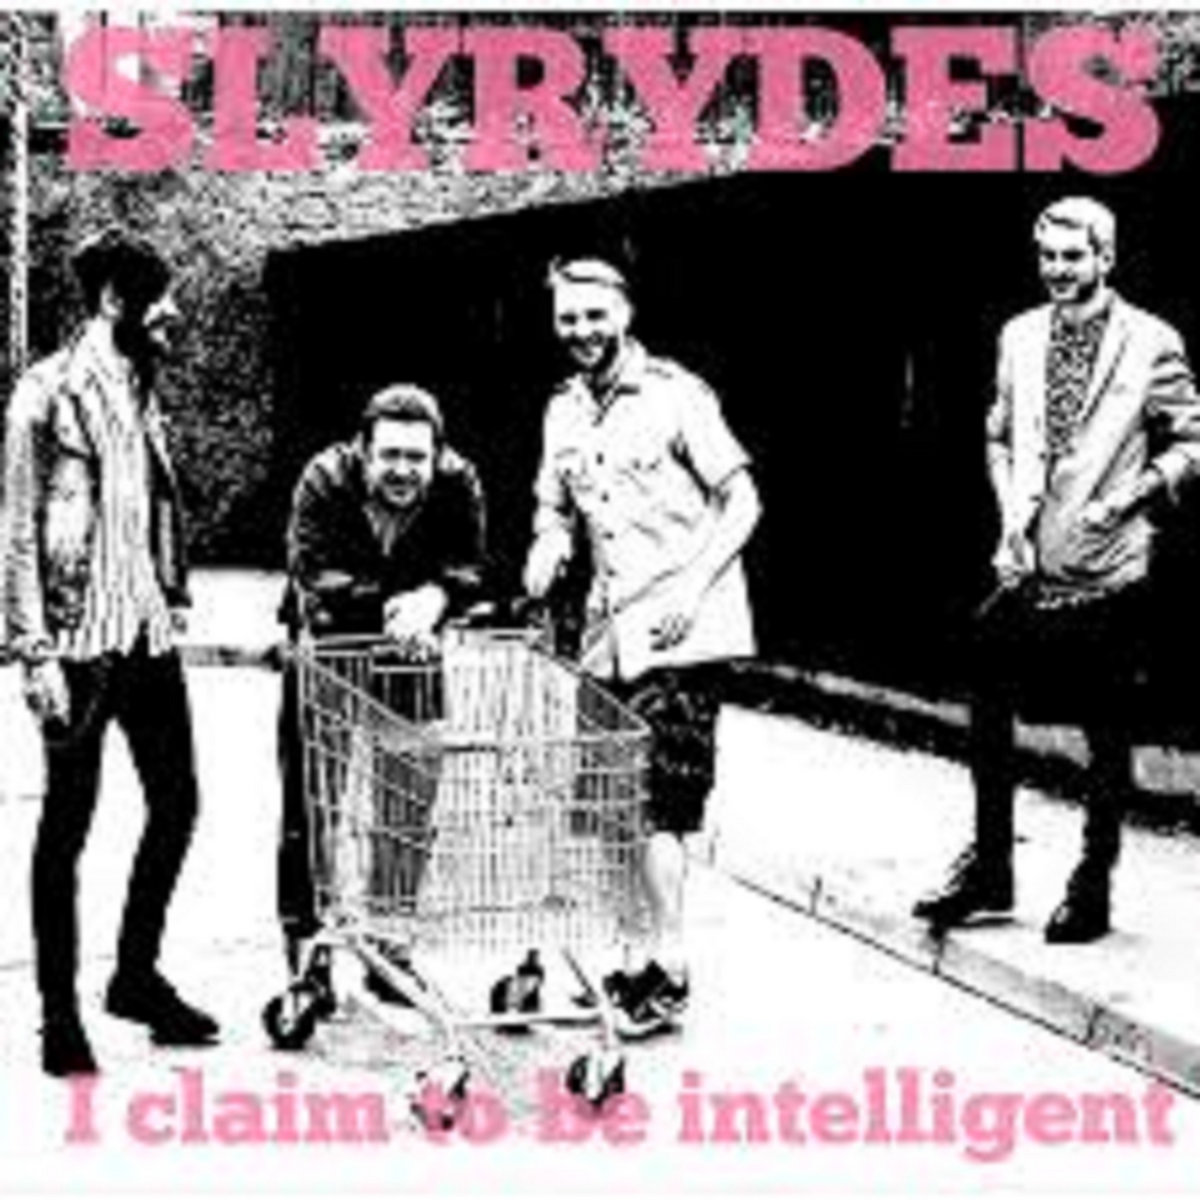 I Claim To Be Intelligent by Slyrydes